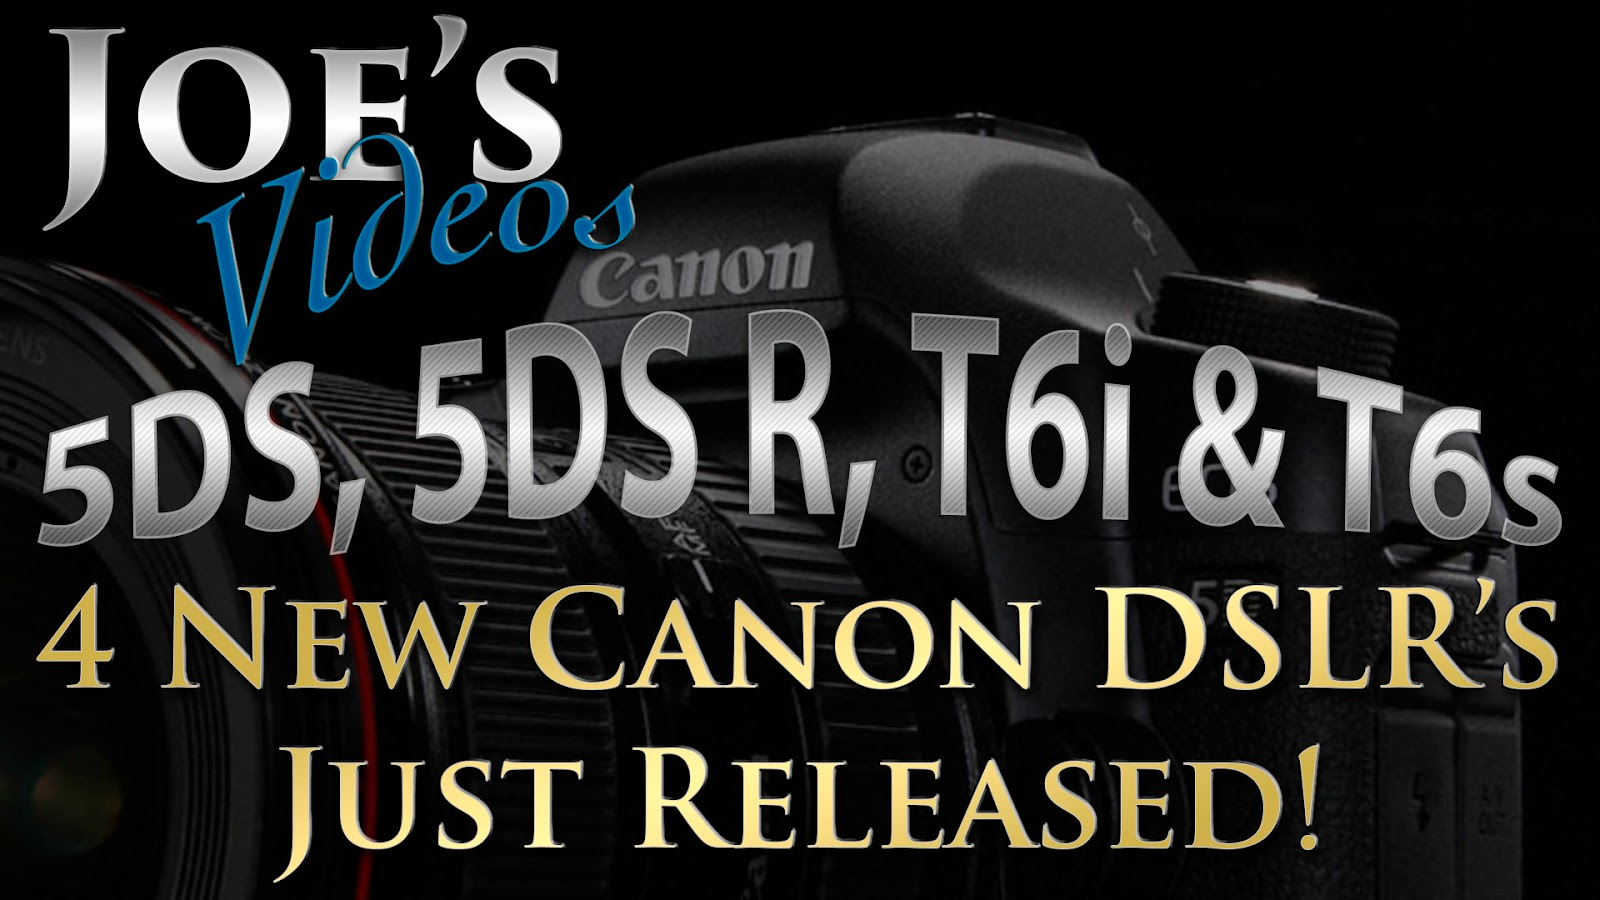 4 New Canon DSLR Camera Just Released! 5DS, 5DS R, T6i & T6s | Joe's Videos